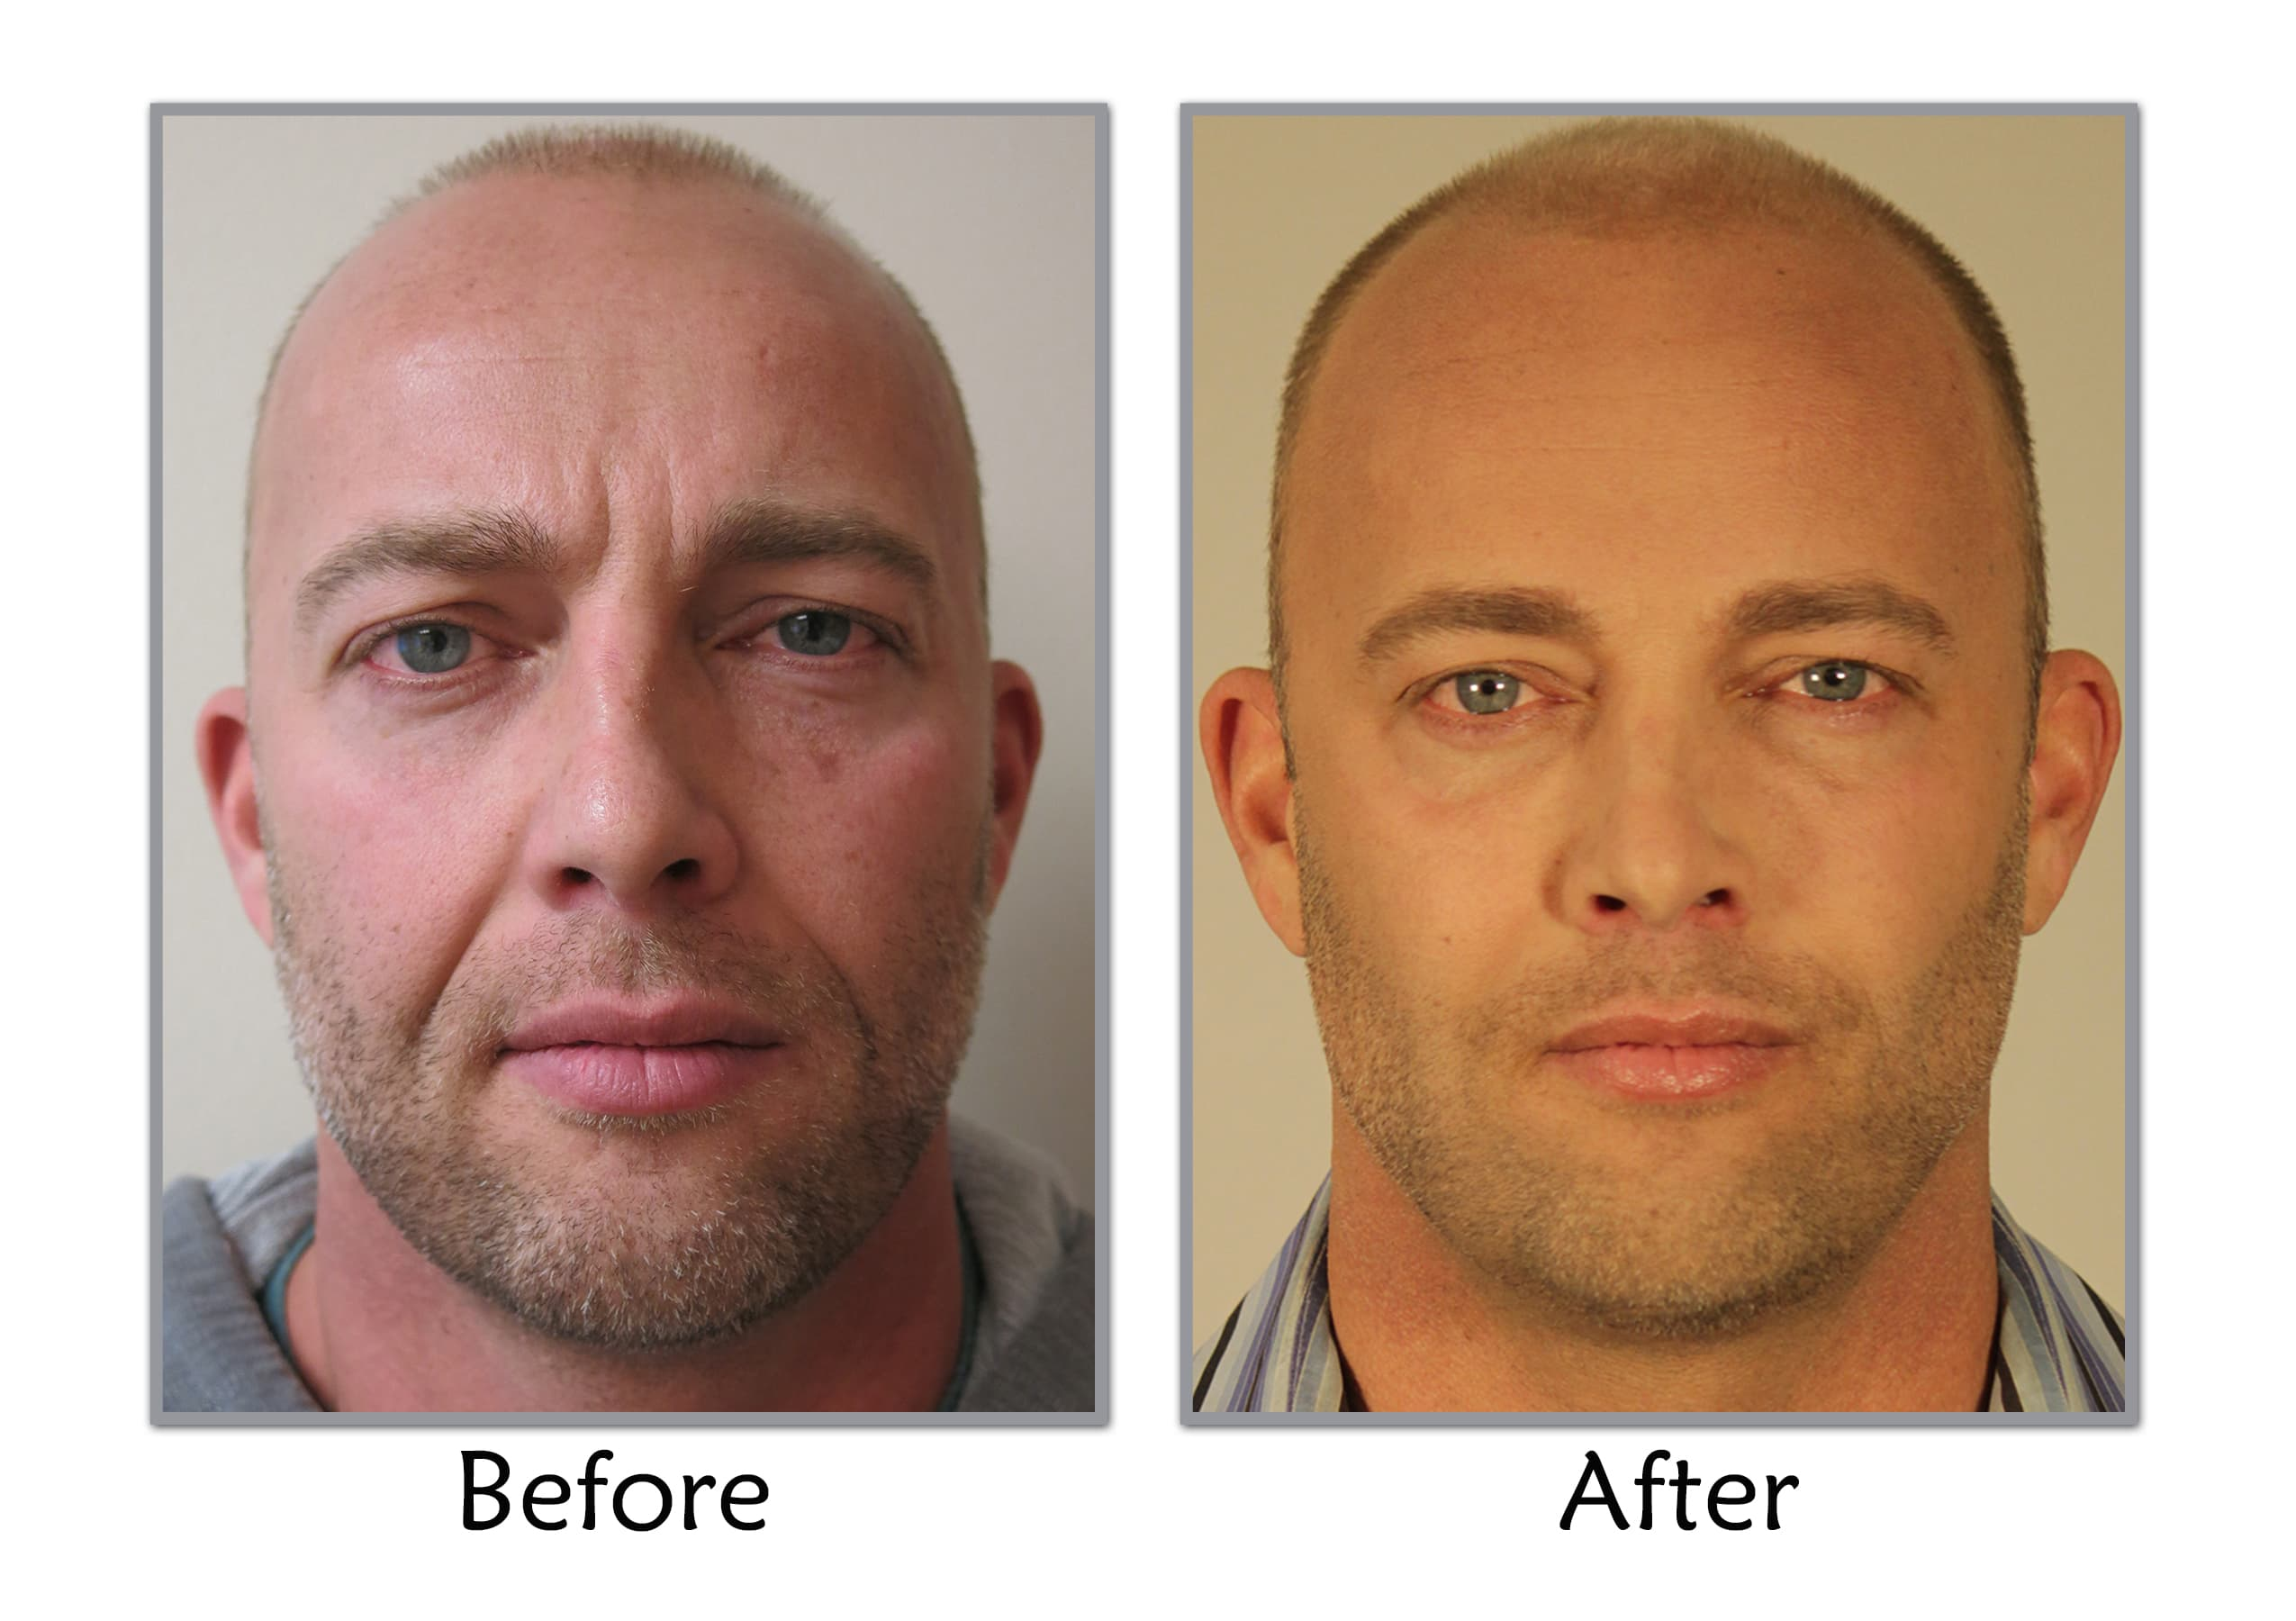 Nose Reconstruction Plastic Man Surgery Photos Before And After photo - 1